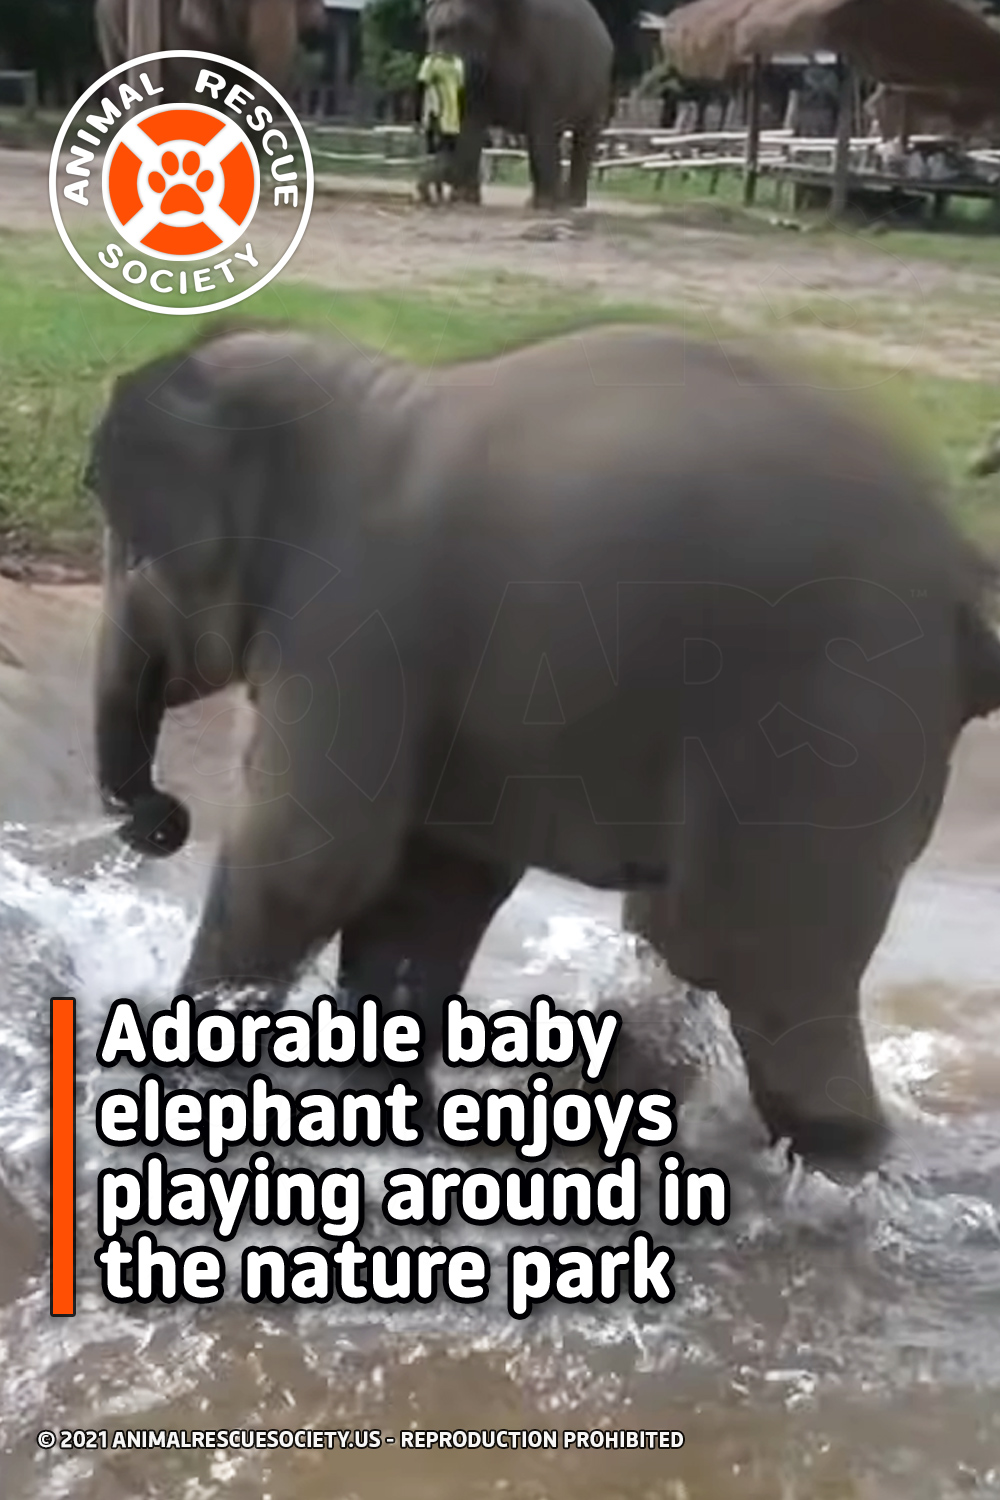 Adorable baby elephant enjoys playing around in the nature park